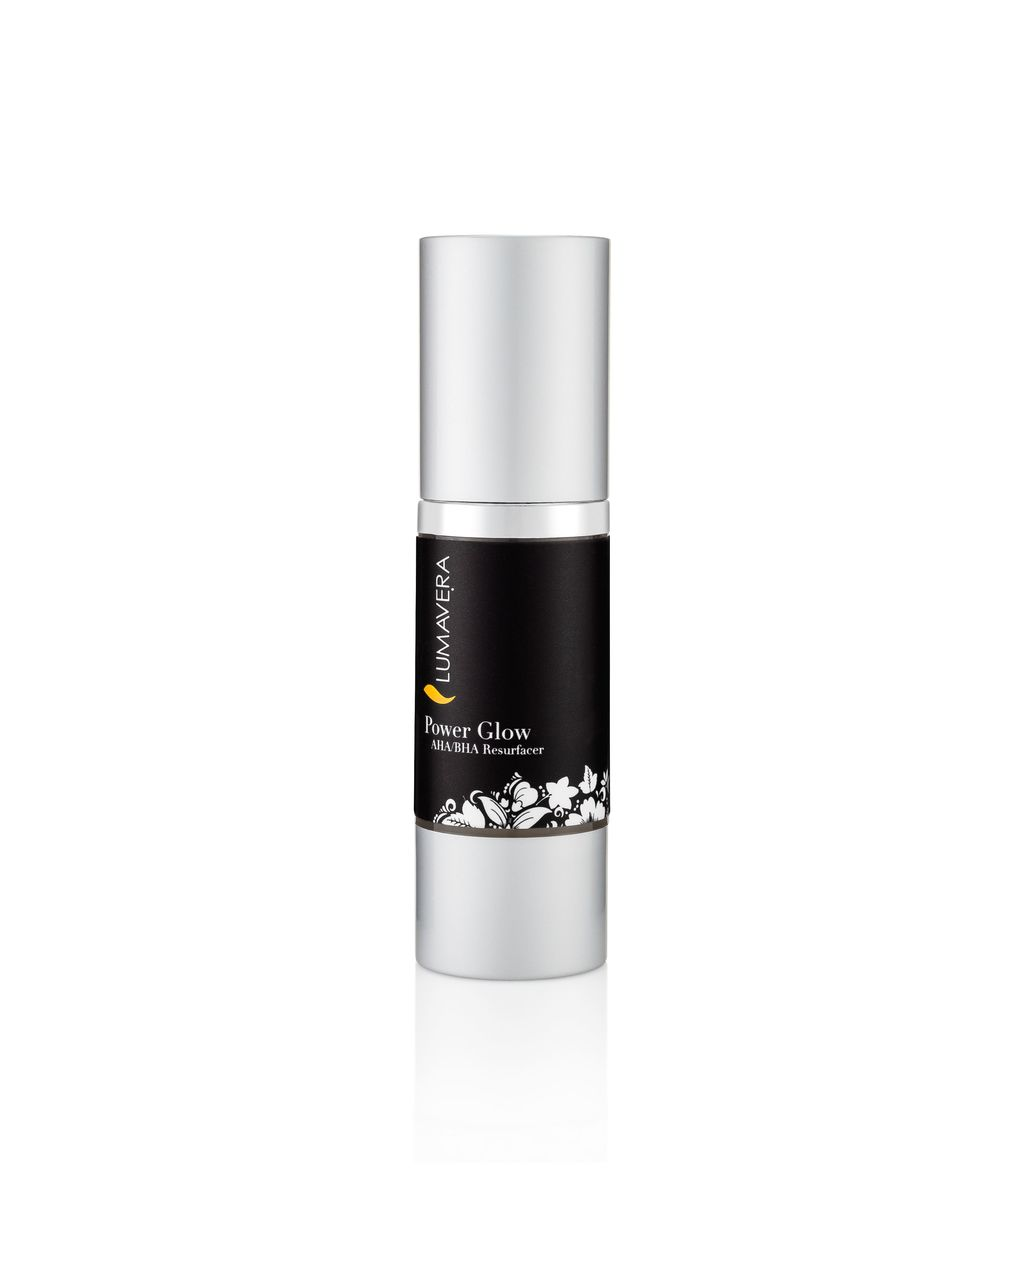 PowerGlow AHA/BHA Resurfacer